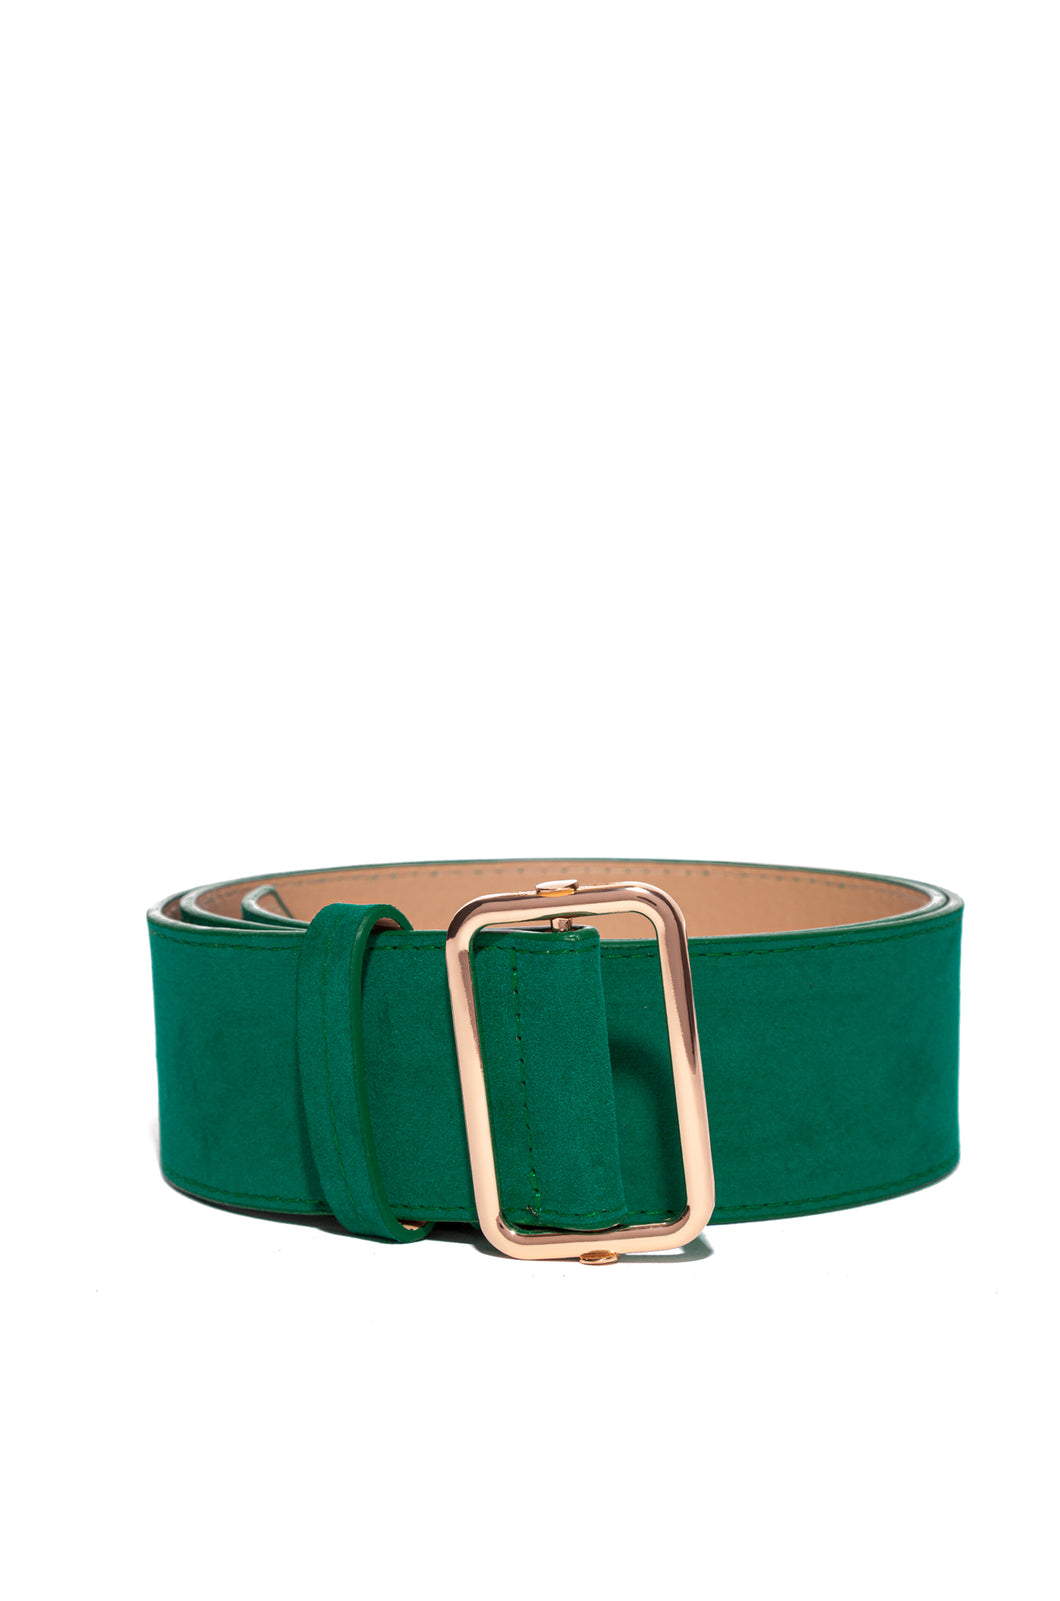 Fashion Figure Belt - Teal Green